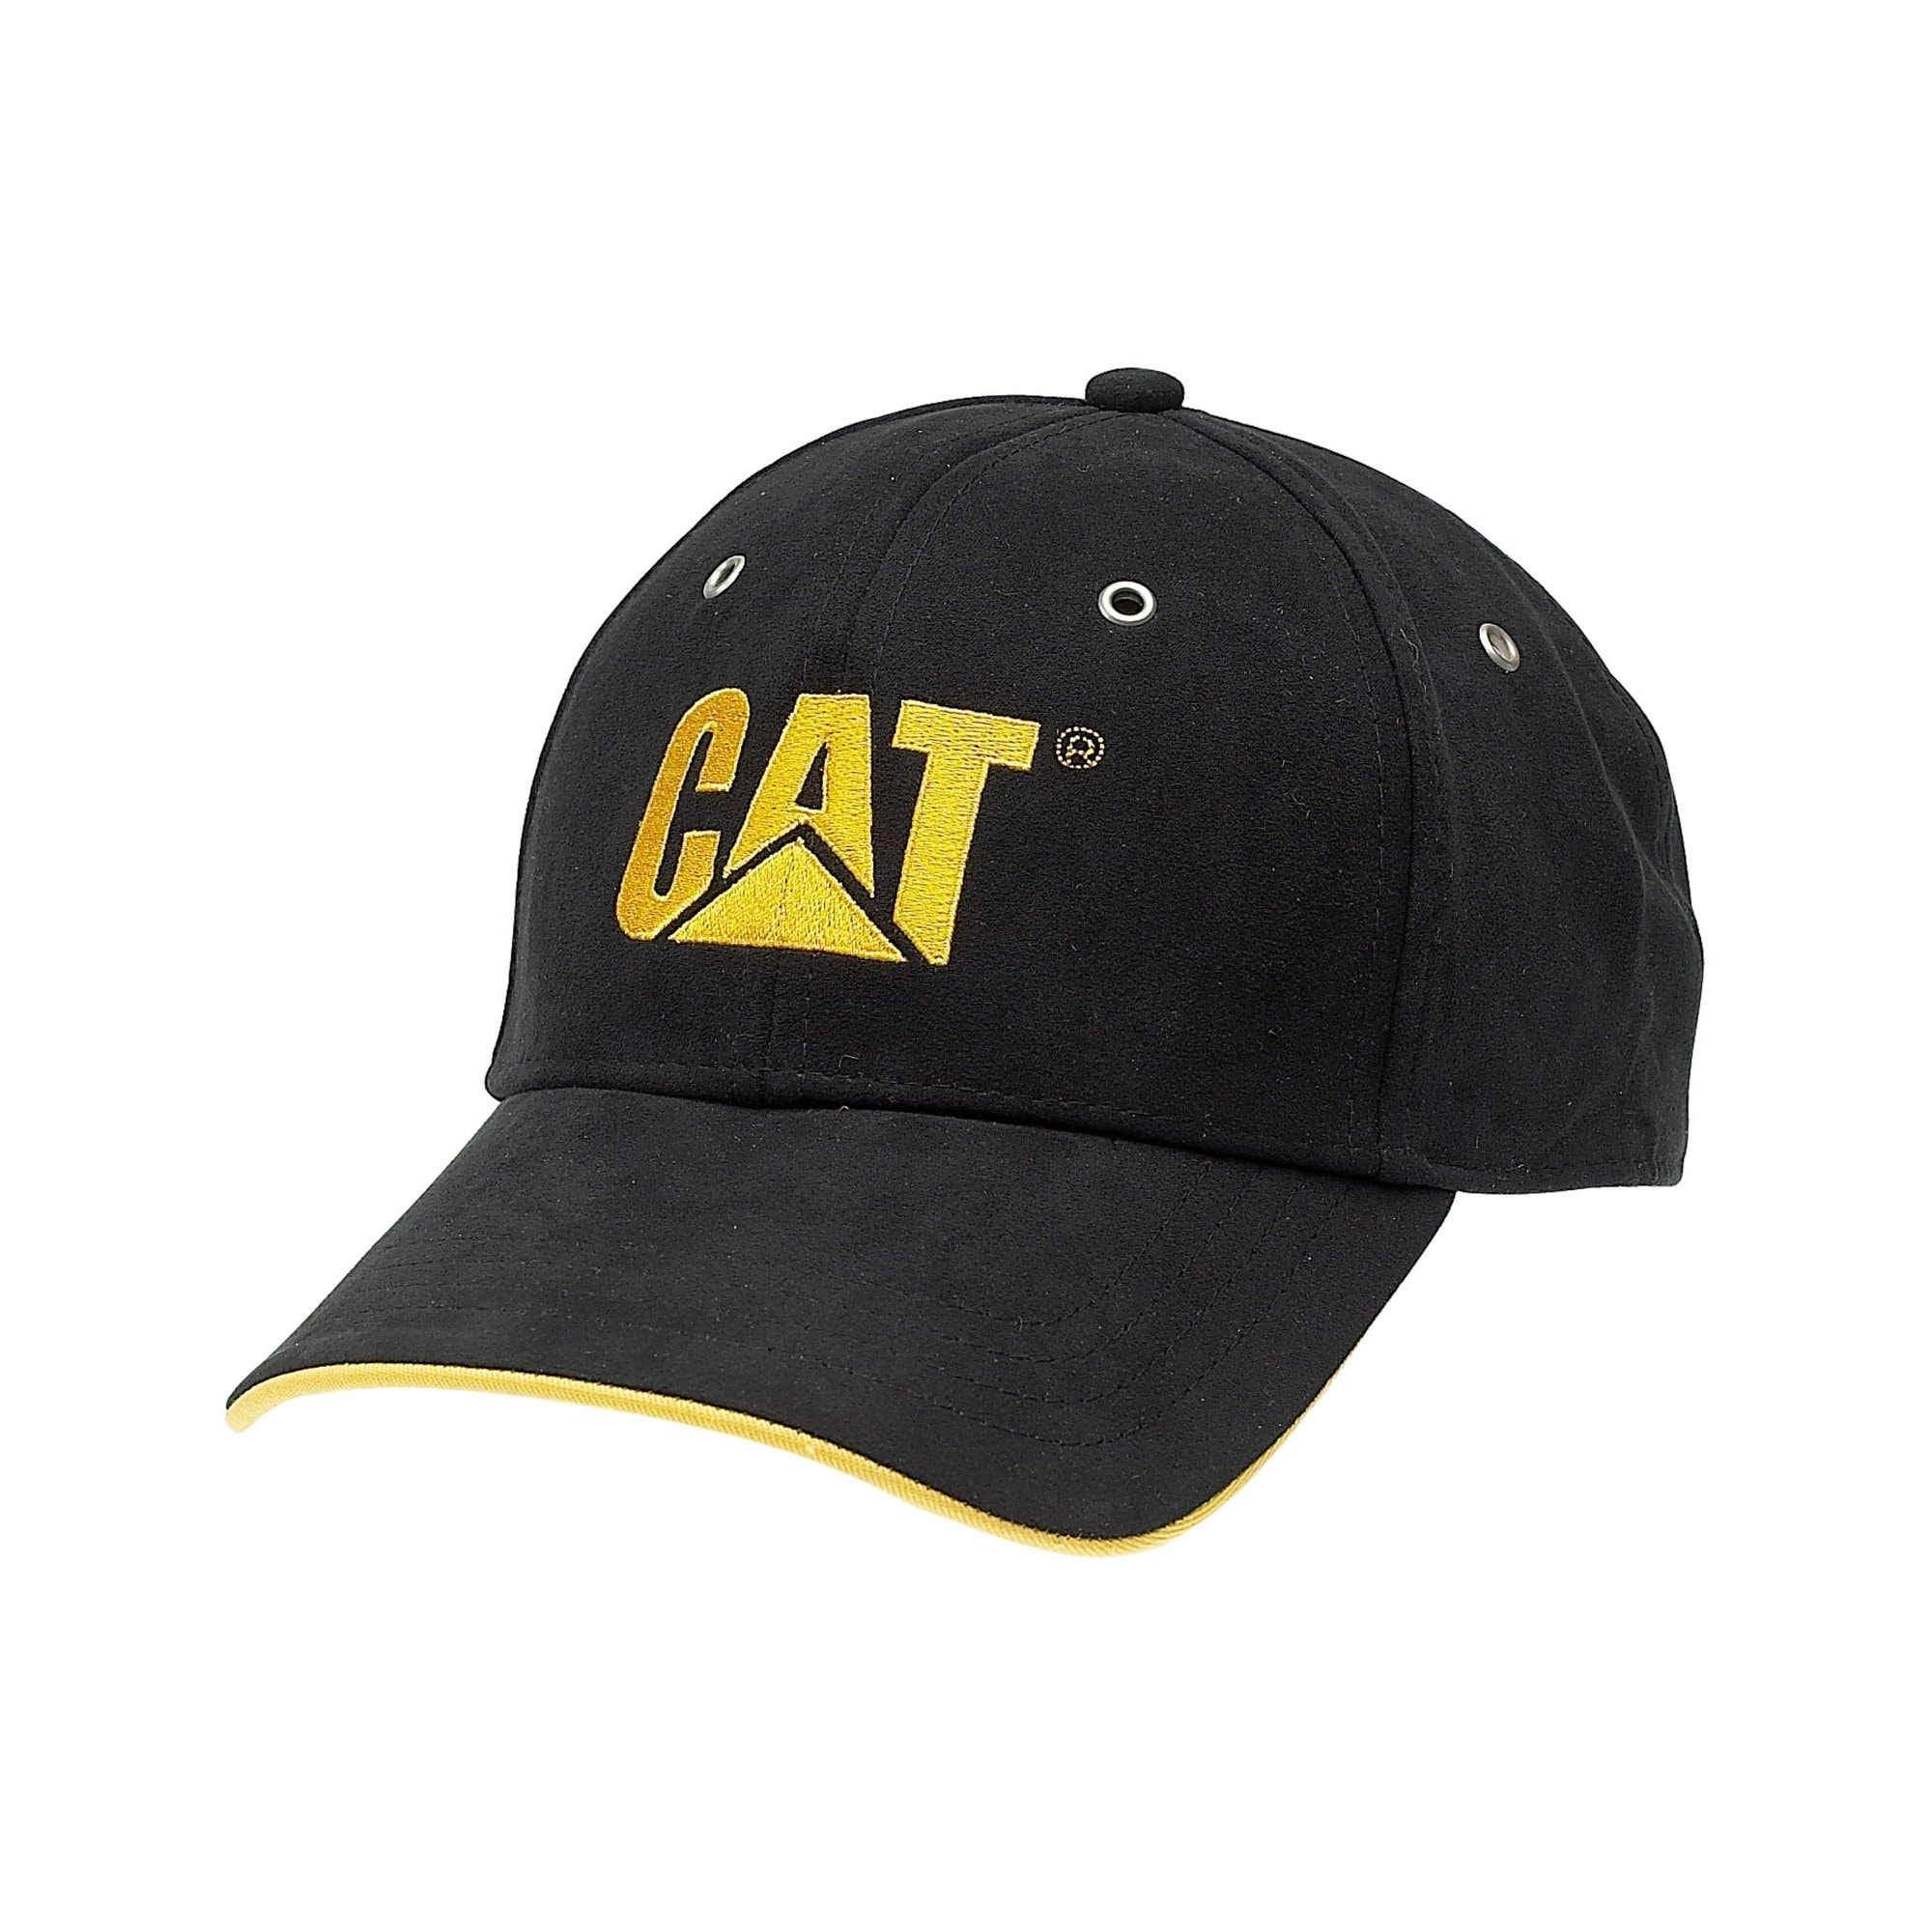 Image of CATERPILLAR Baseball Cap »C434 Baseballkappe«